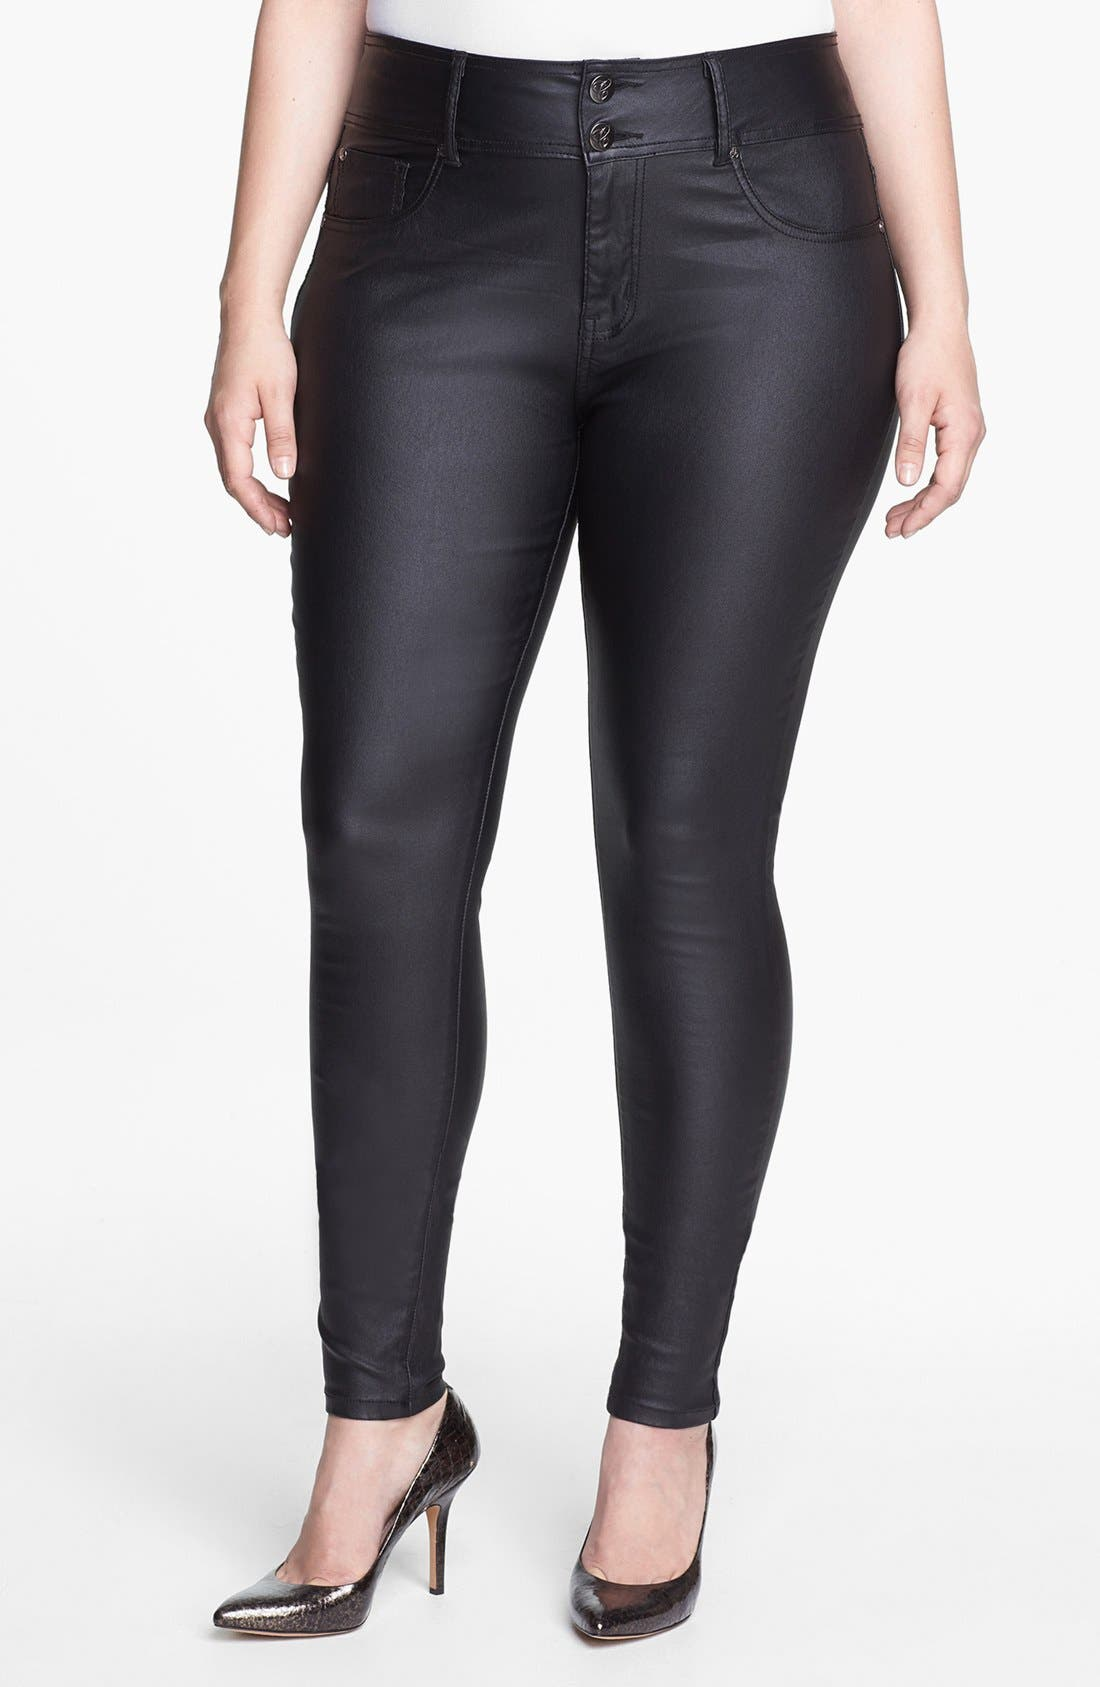 Main Image - City Chic Coated Stretch Jeans (Plus Size)